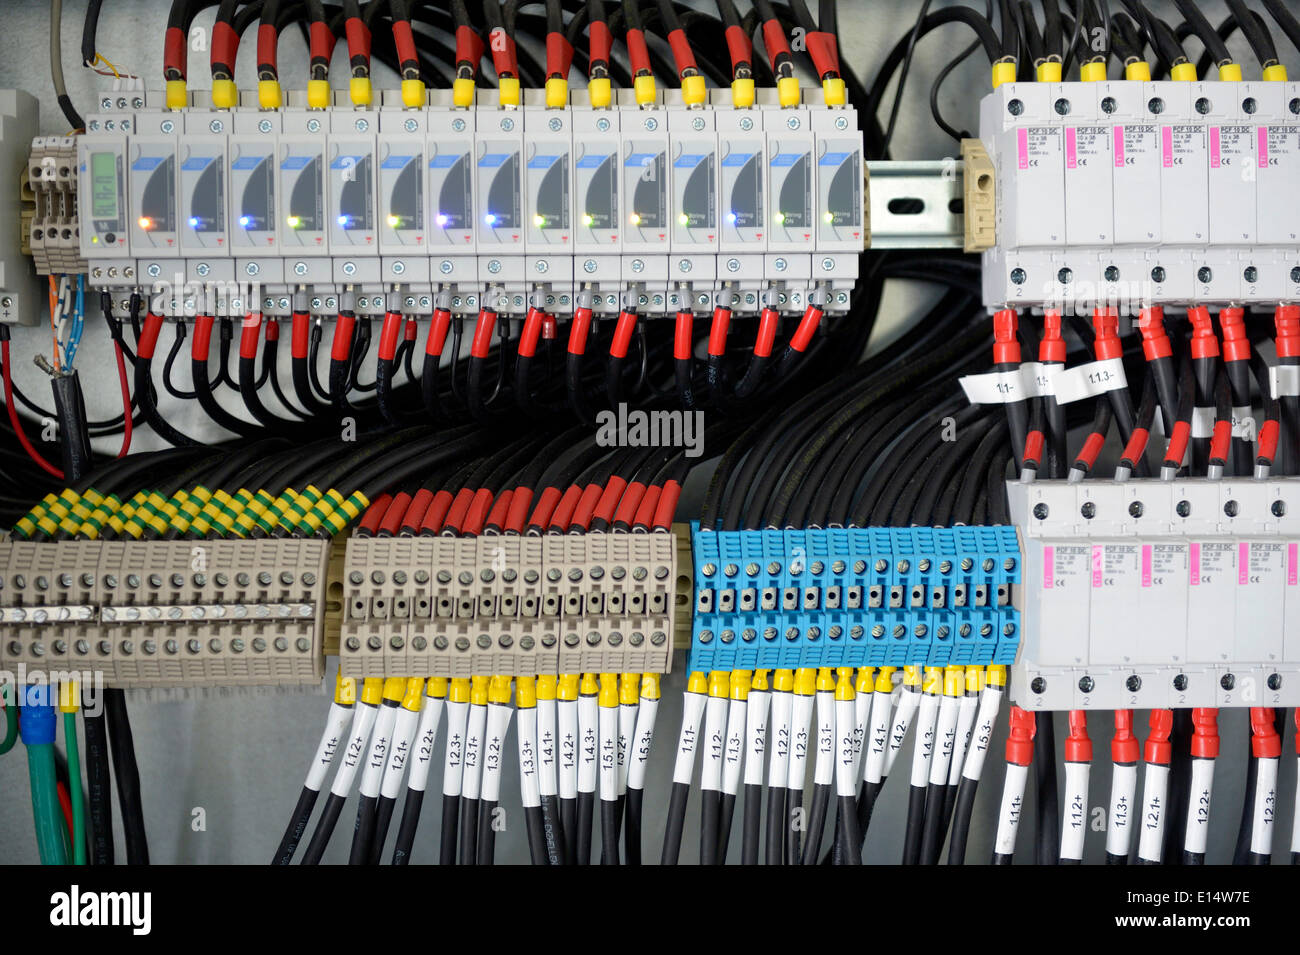 fuse box with many cables E14W7E fuse box with many cables stock photo, royalty free image fuse box cable at aneh.co